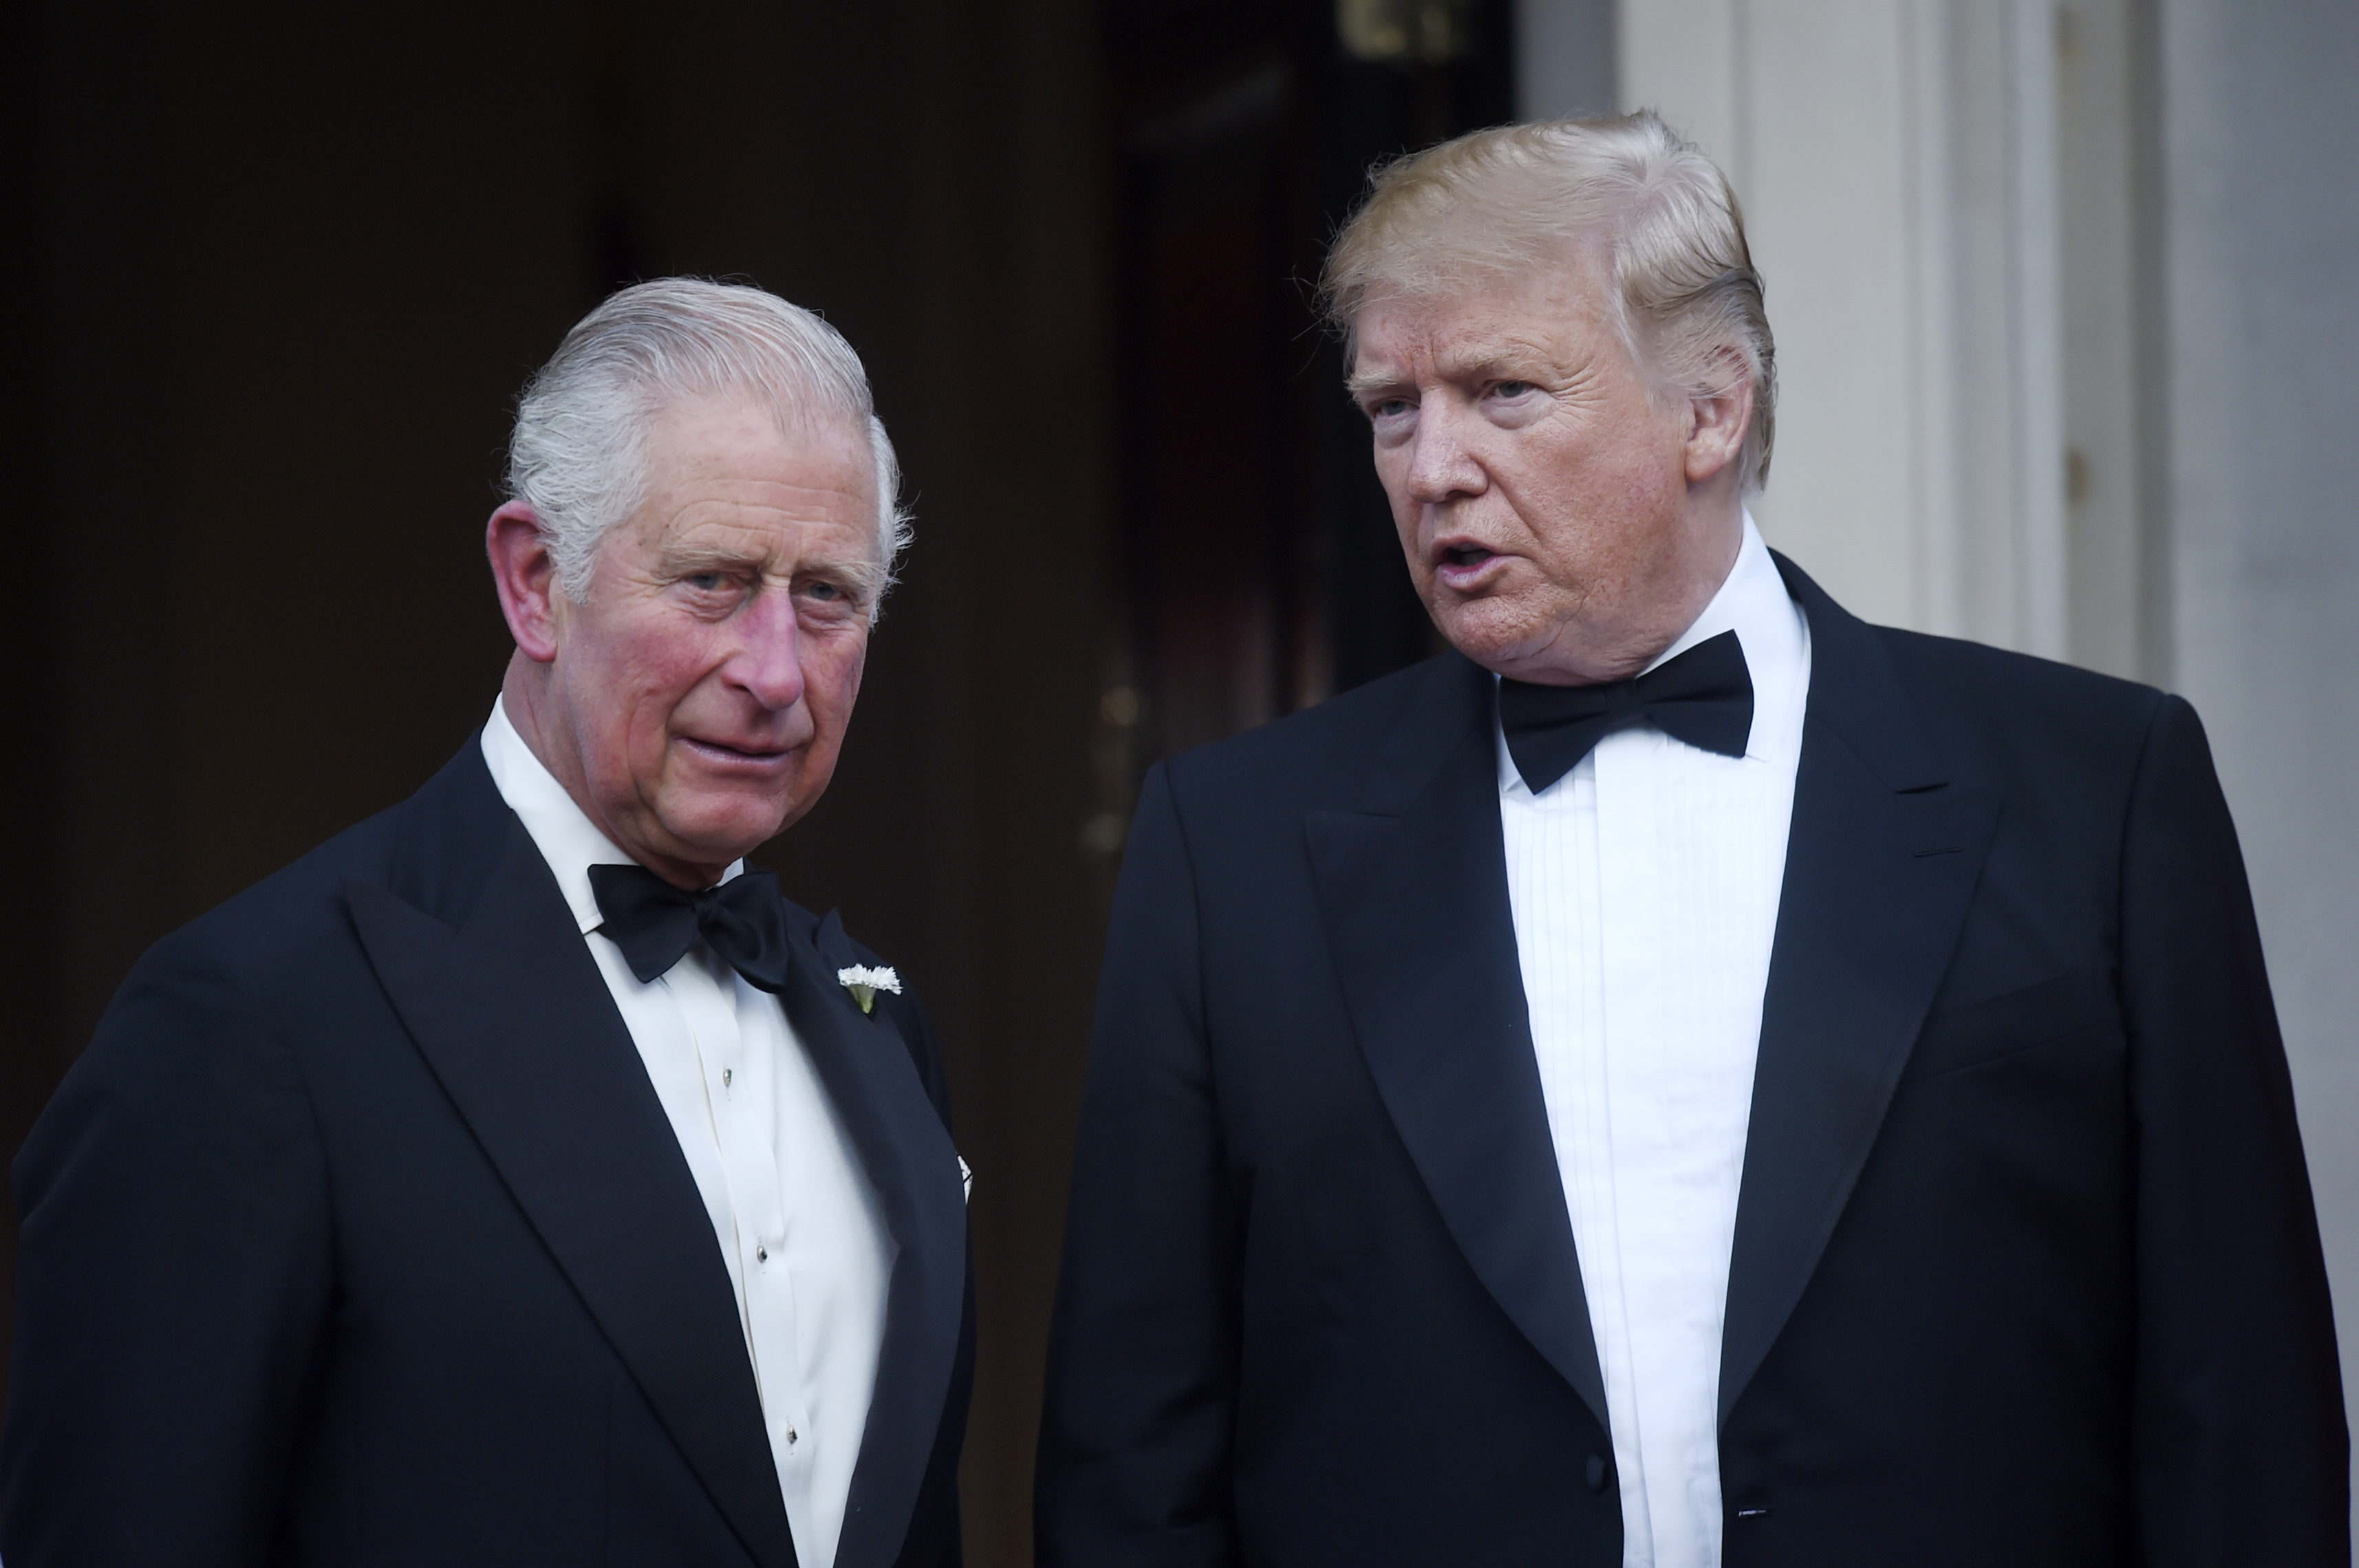 President Donald Trump and Prince Charles pose ahead of a dinner at Winfield House on June 4, 2019 in London, England.